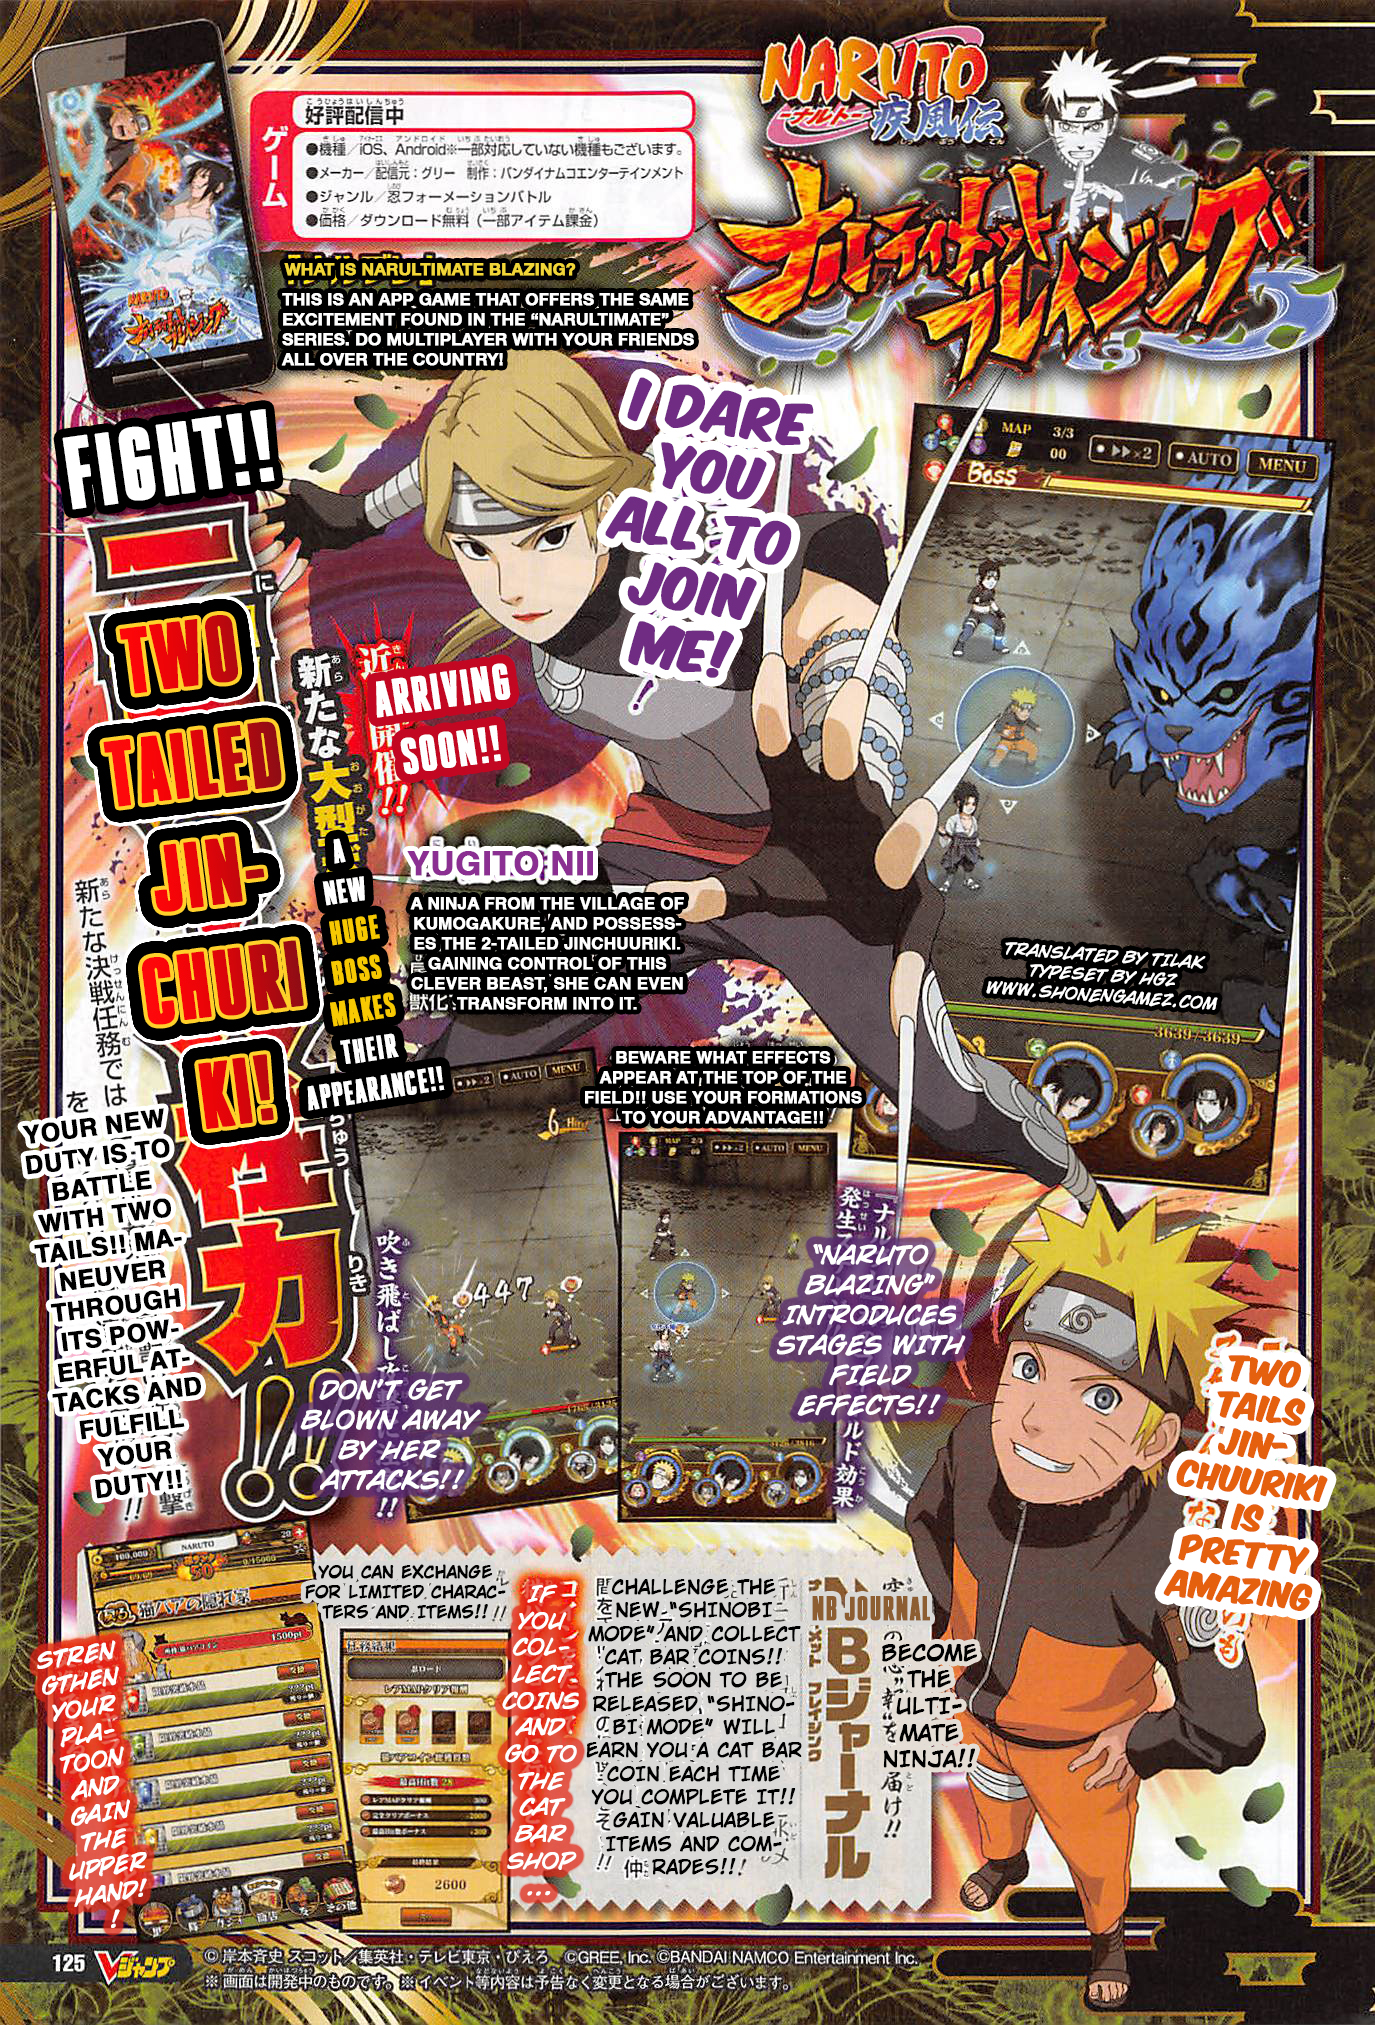 Naruto Blazing Adds Two Tailed Boss Battle in Latest Update